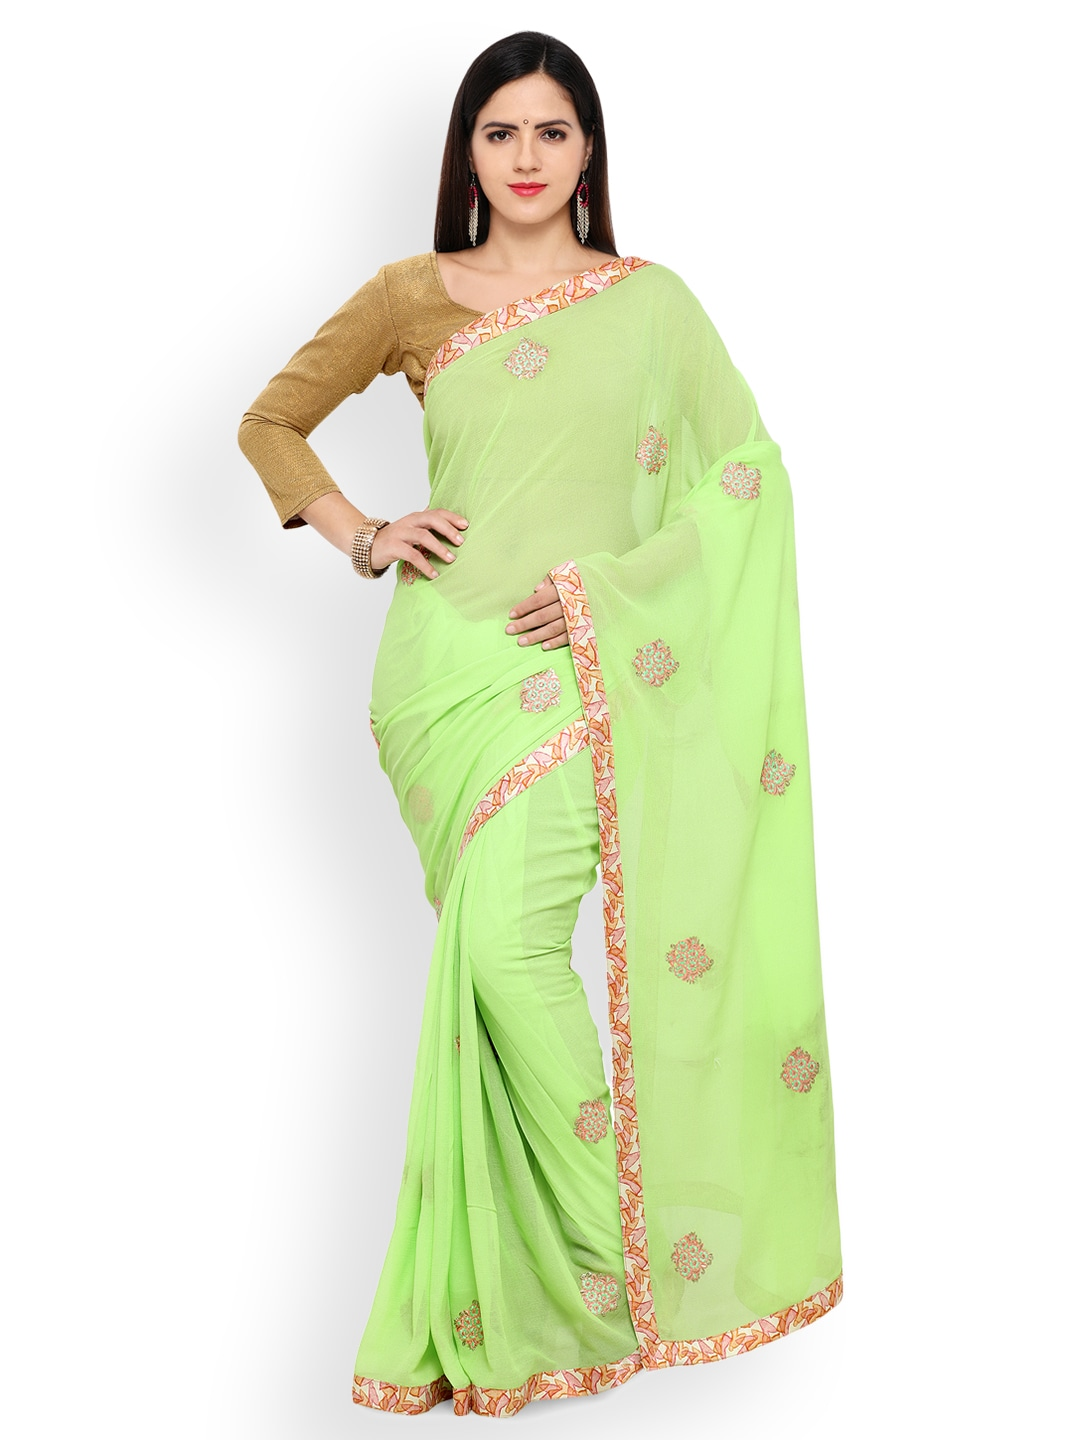 8af310a8b7a Saree - Buy Sarees Online at Best Price in India